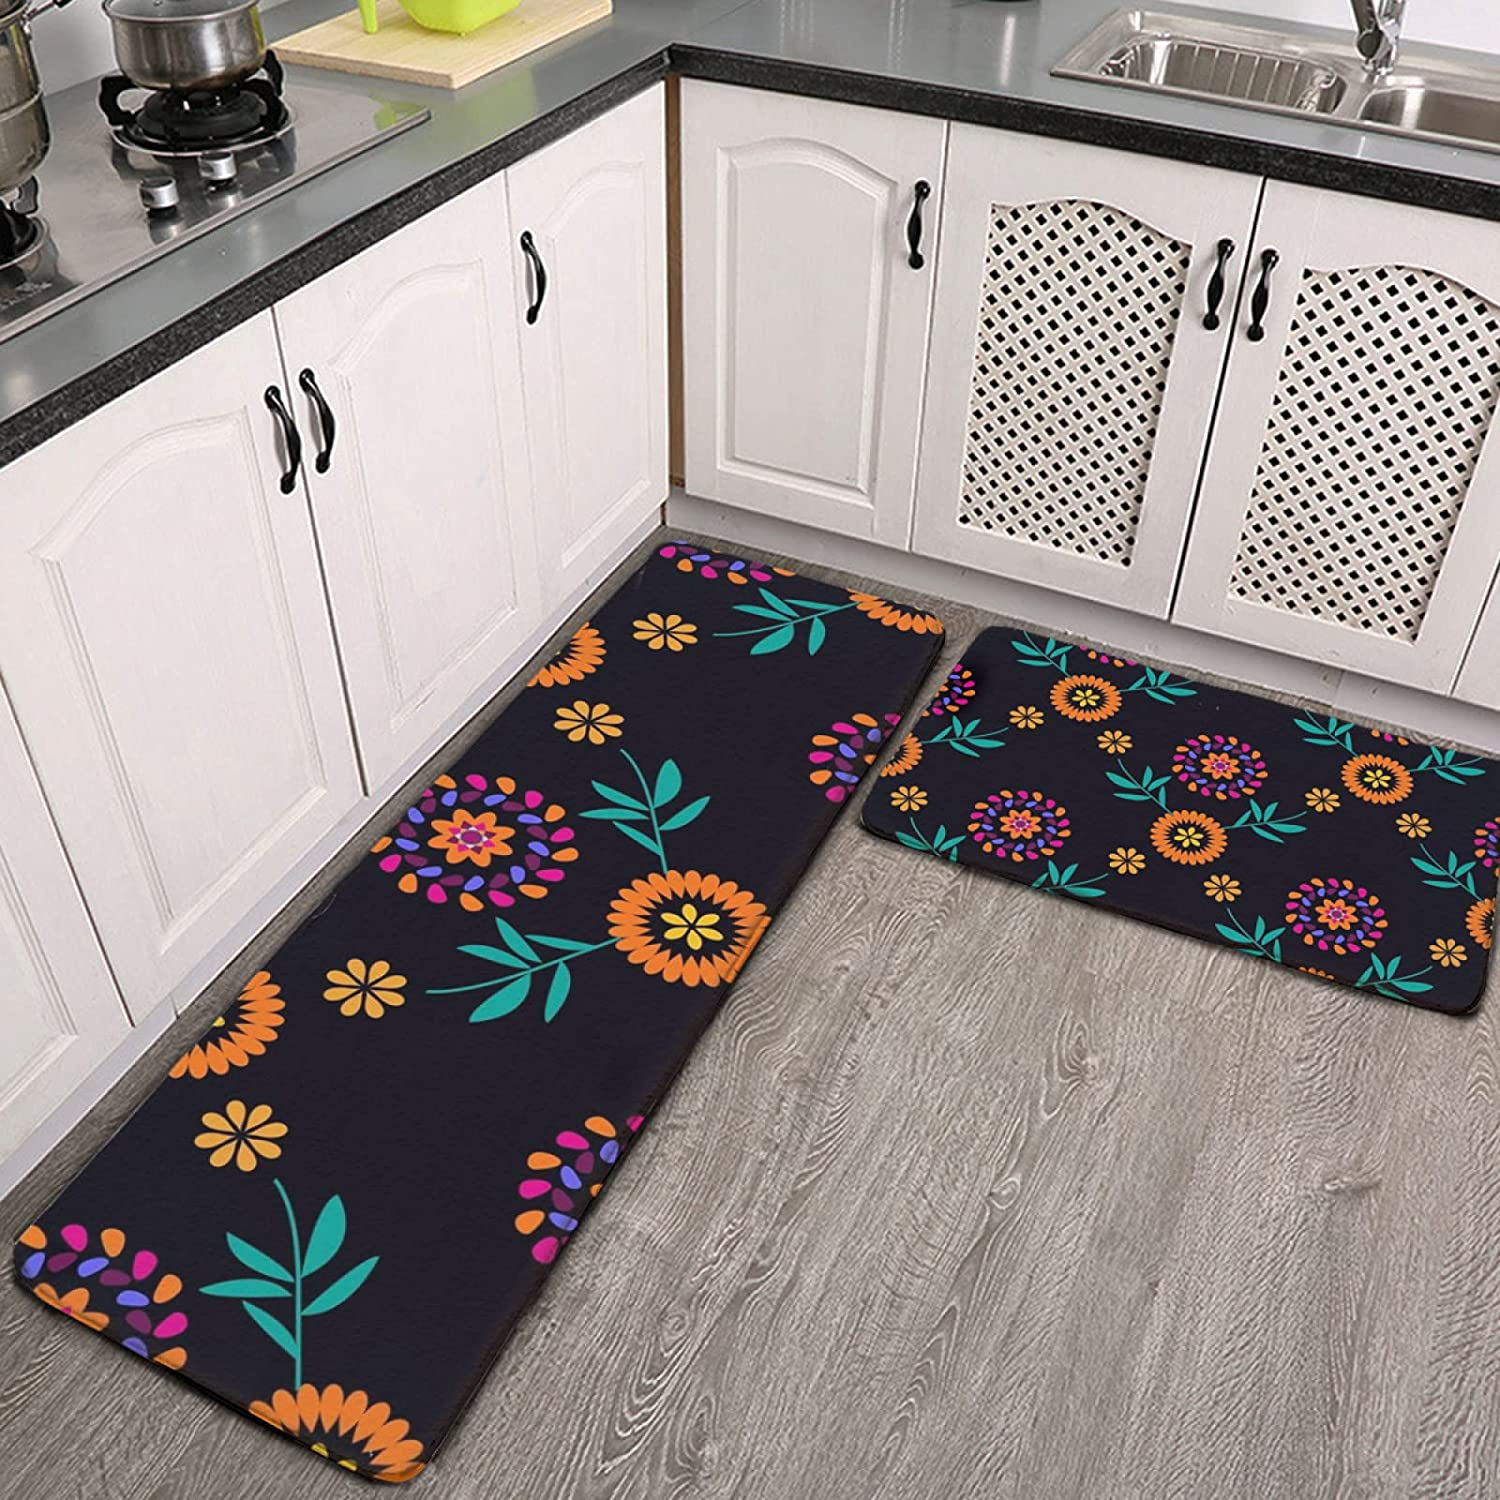 OcuteO Kitchen Ranking TOP7 Rugs and Mats Set Dia Colorful 2 Piece OFFicial mail order Flowers De